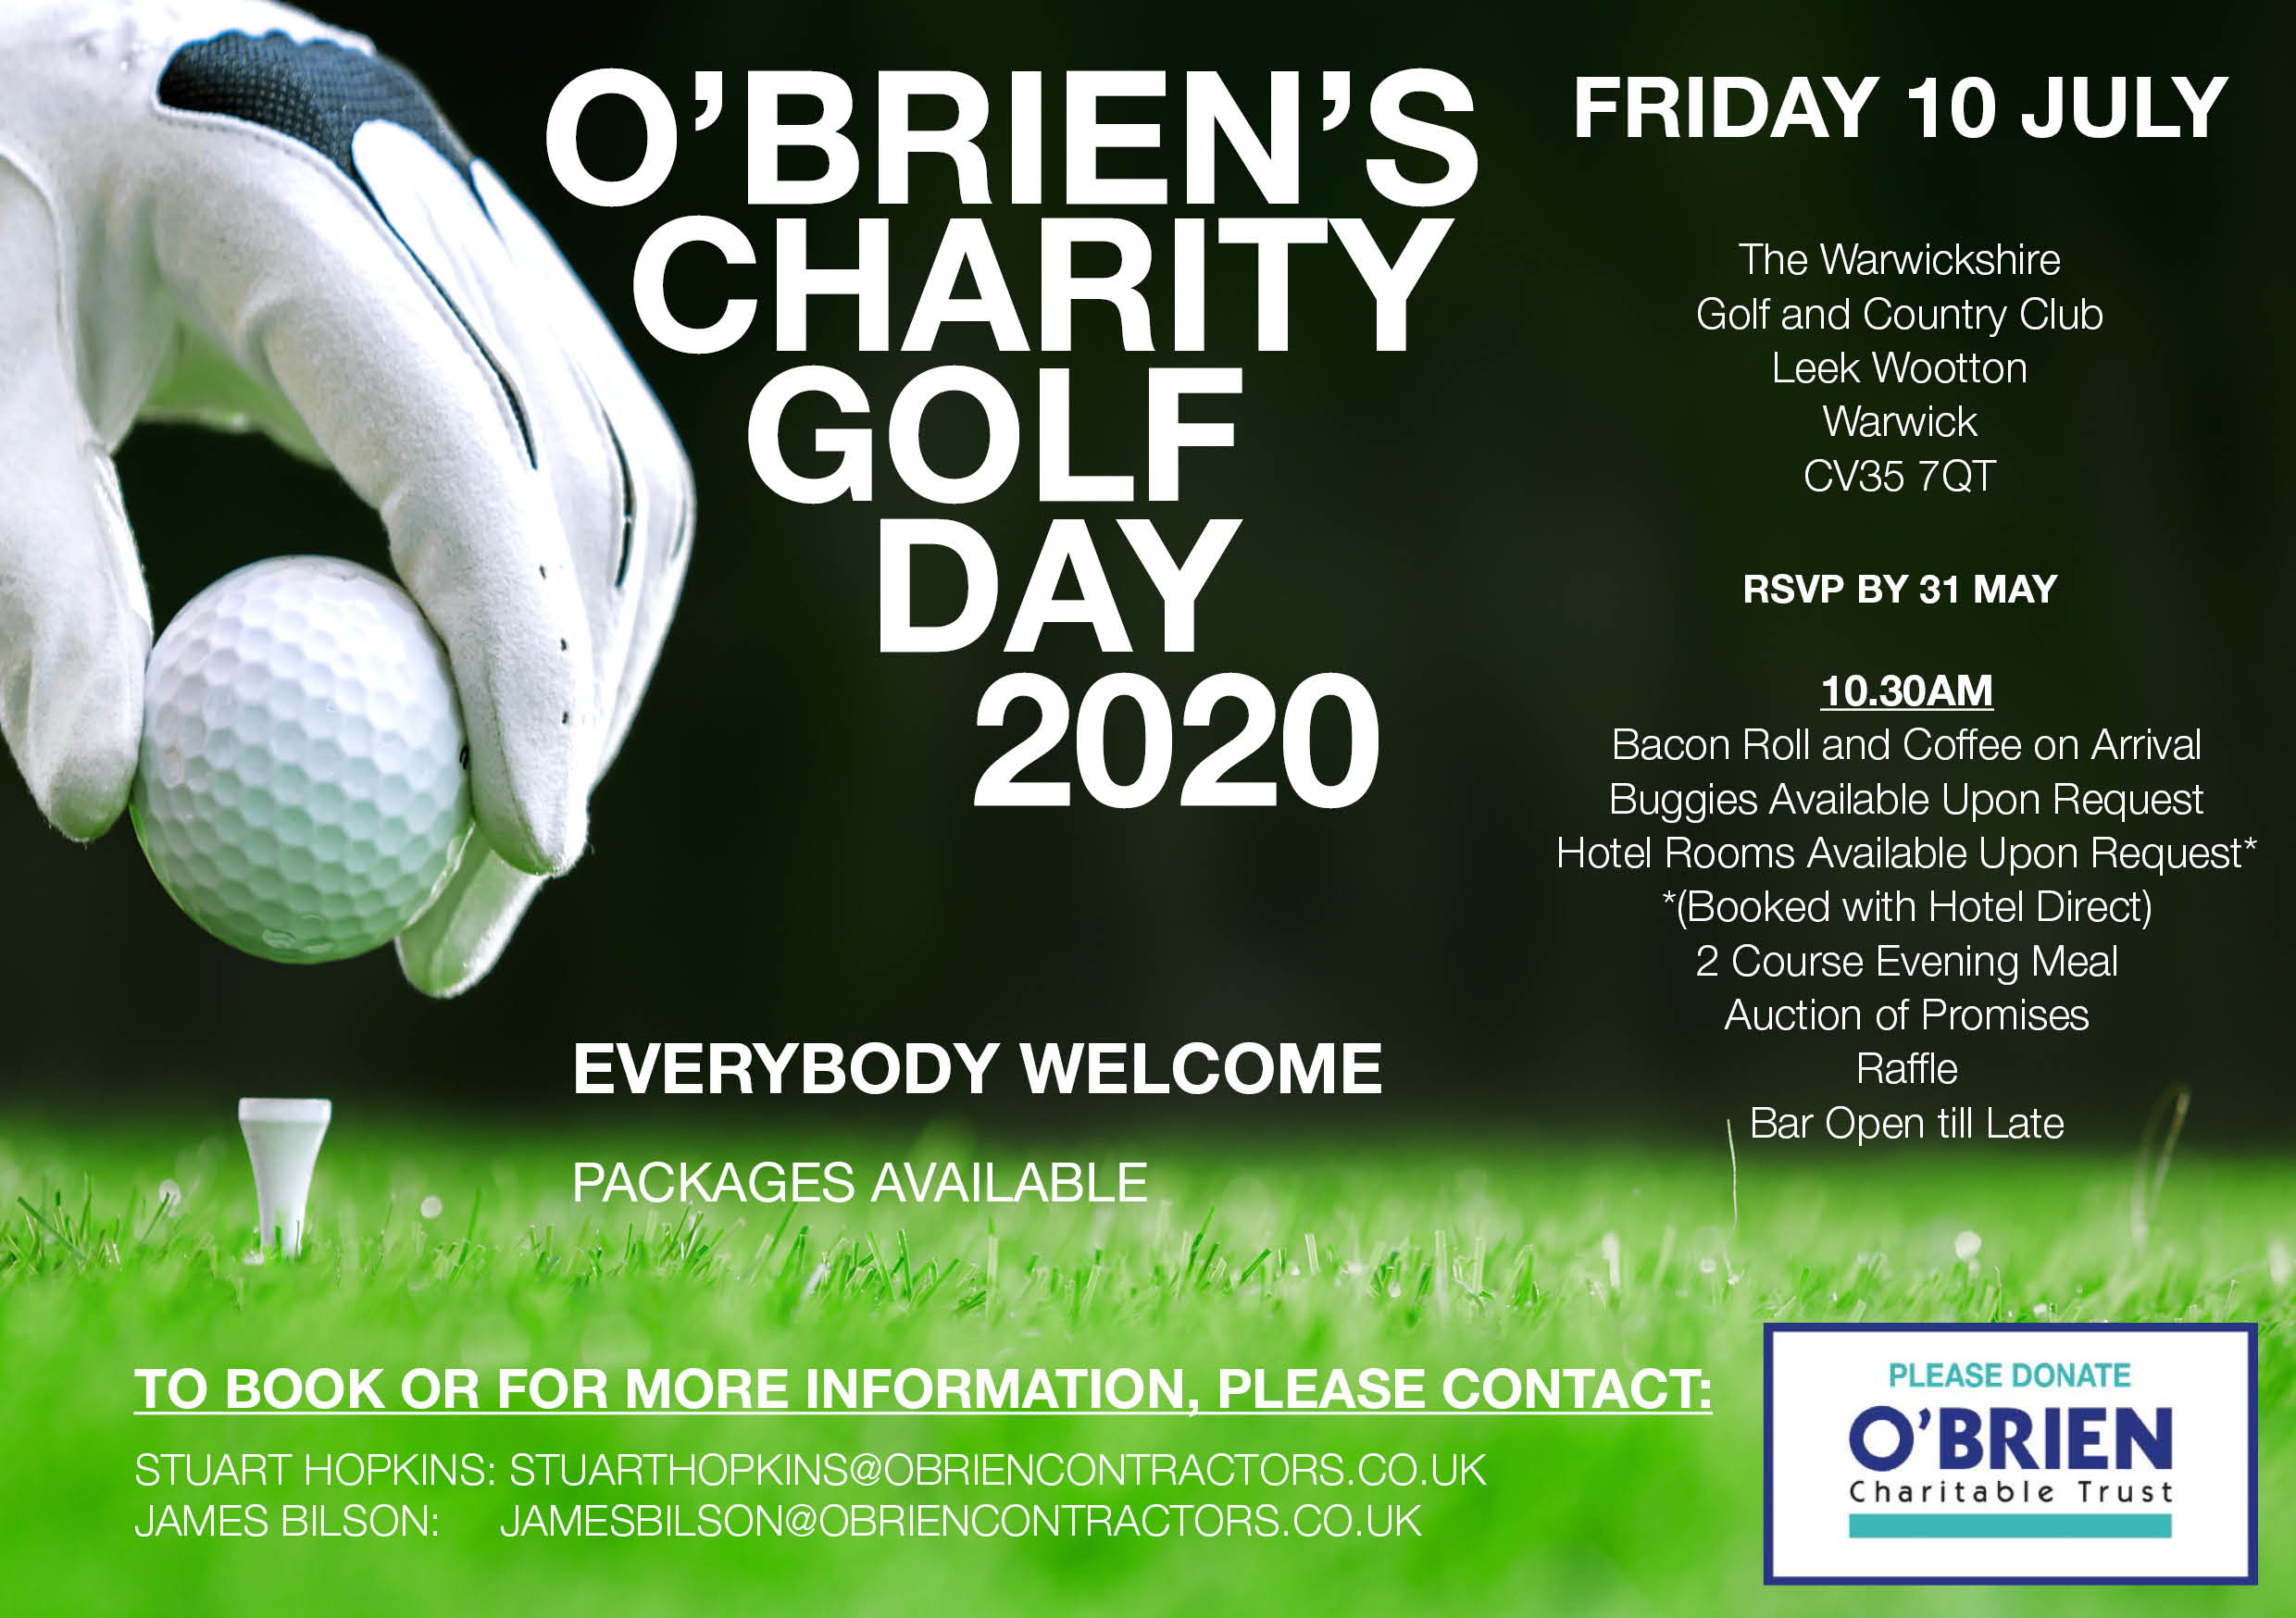 Teeing off our Charitable Trust 2020 Events with the Super Popular Charity Golf Day! 10 JULY 2020